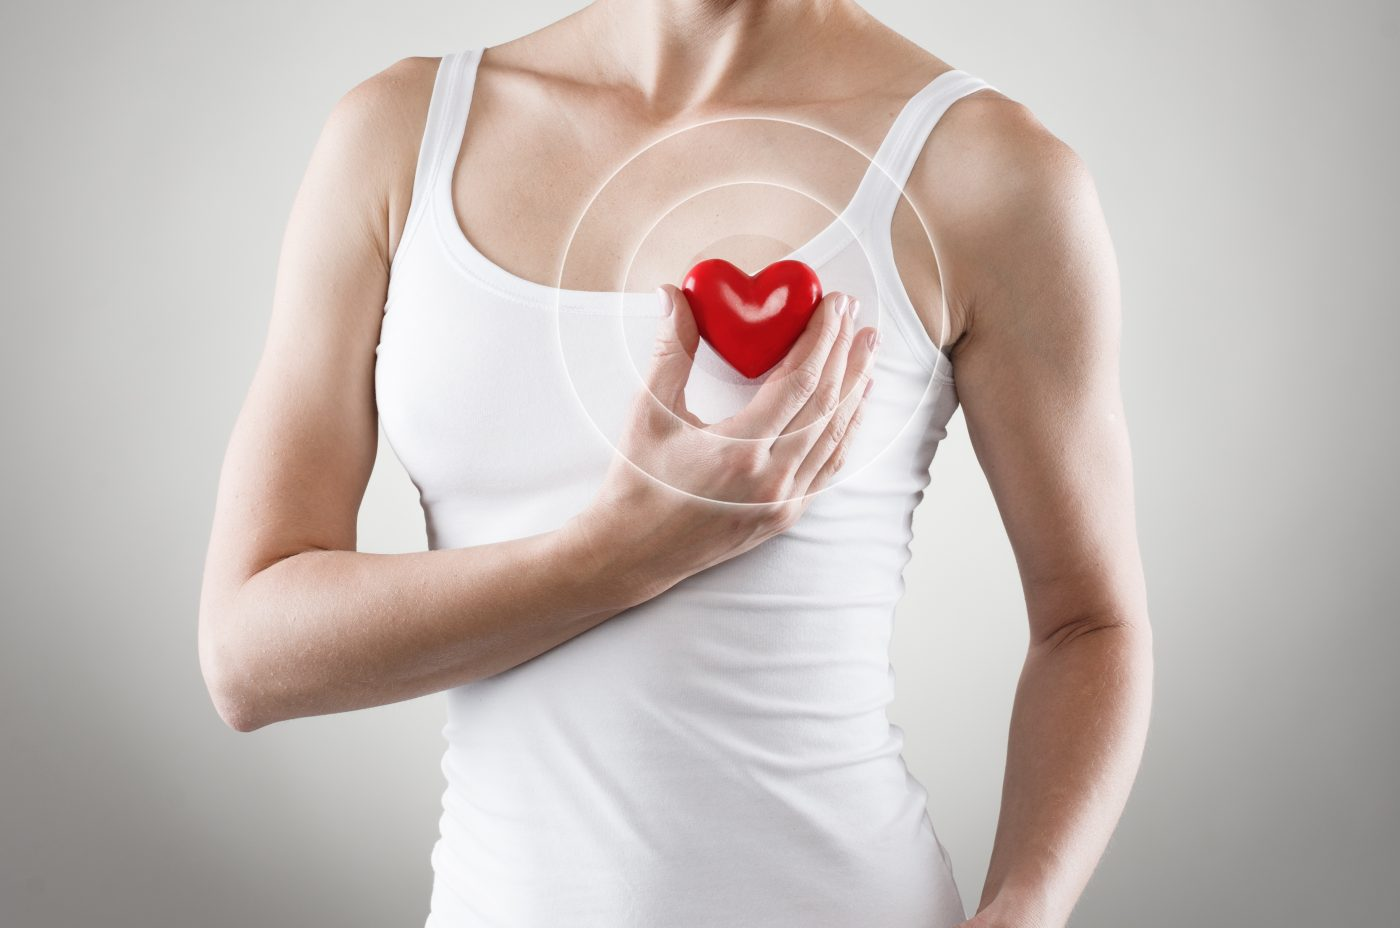 fibromyalgia and heart rate